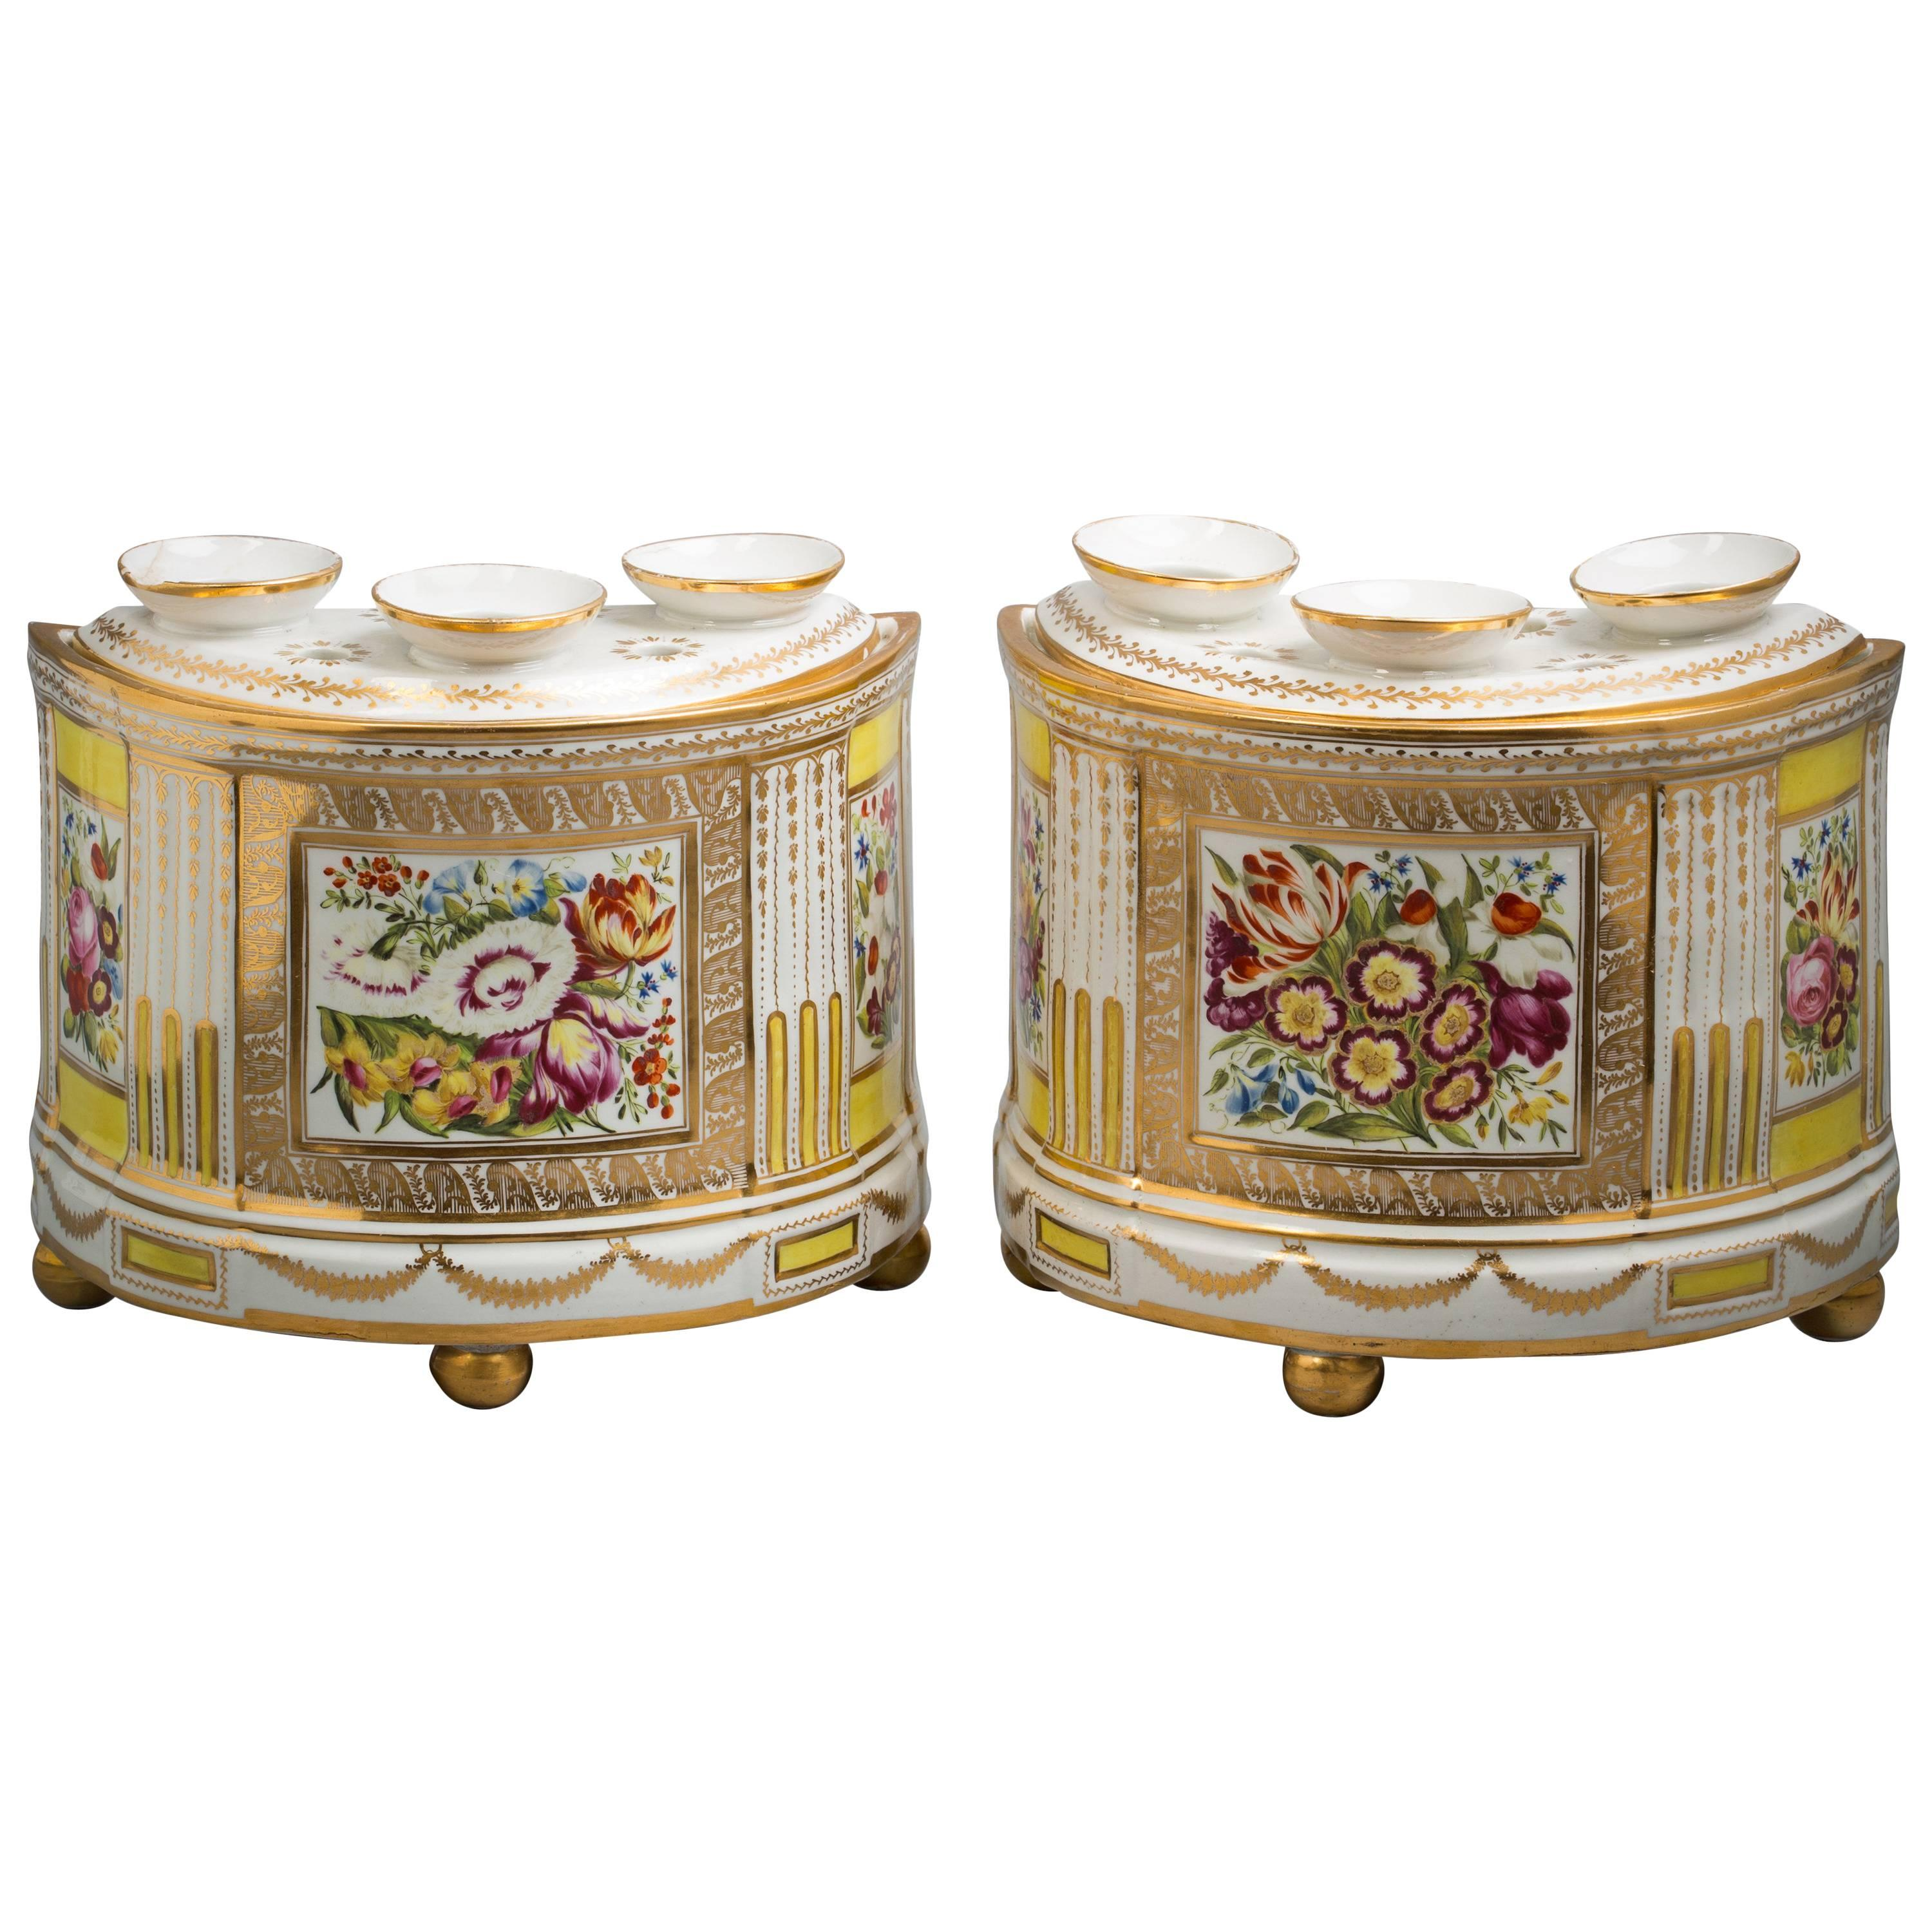 Pair of English Porcelain Demilune Boughpots and Covers, Coalport, circa 1820